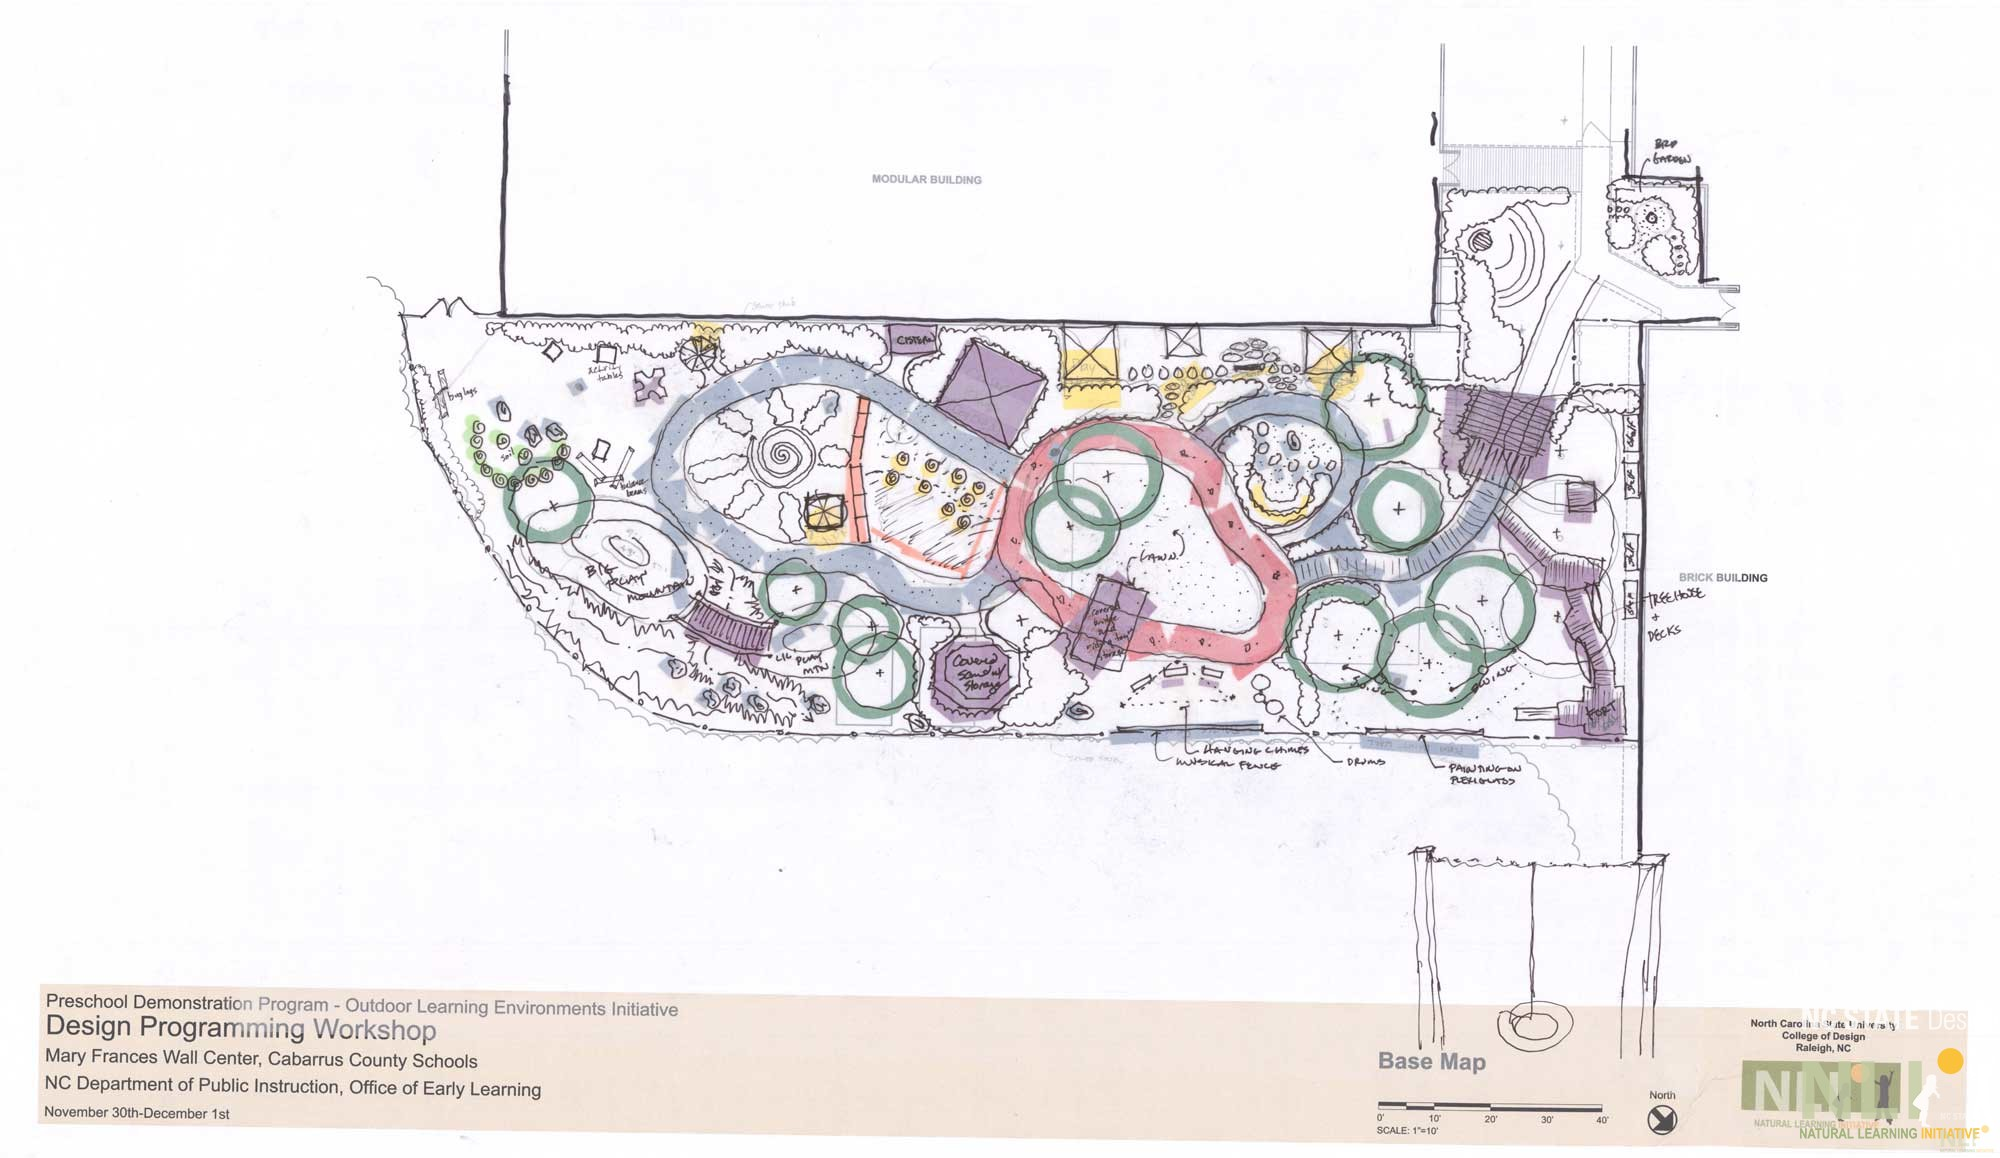 Mary Frances Wall Center, Cabarrus County Schools: Concept